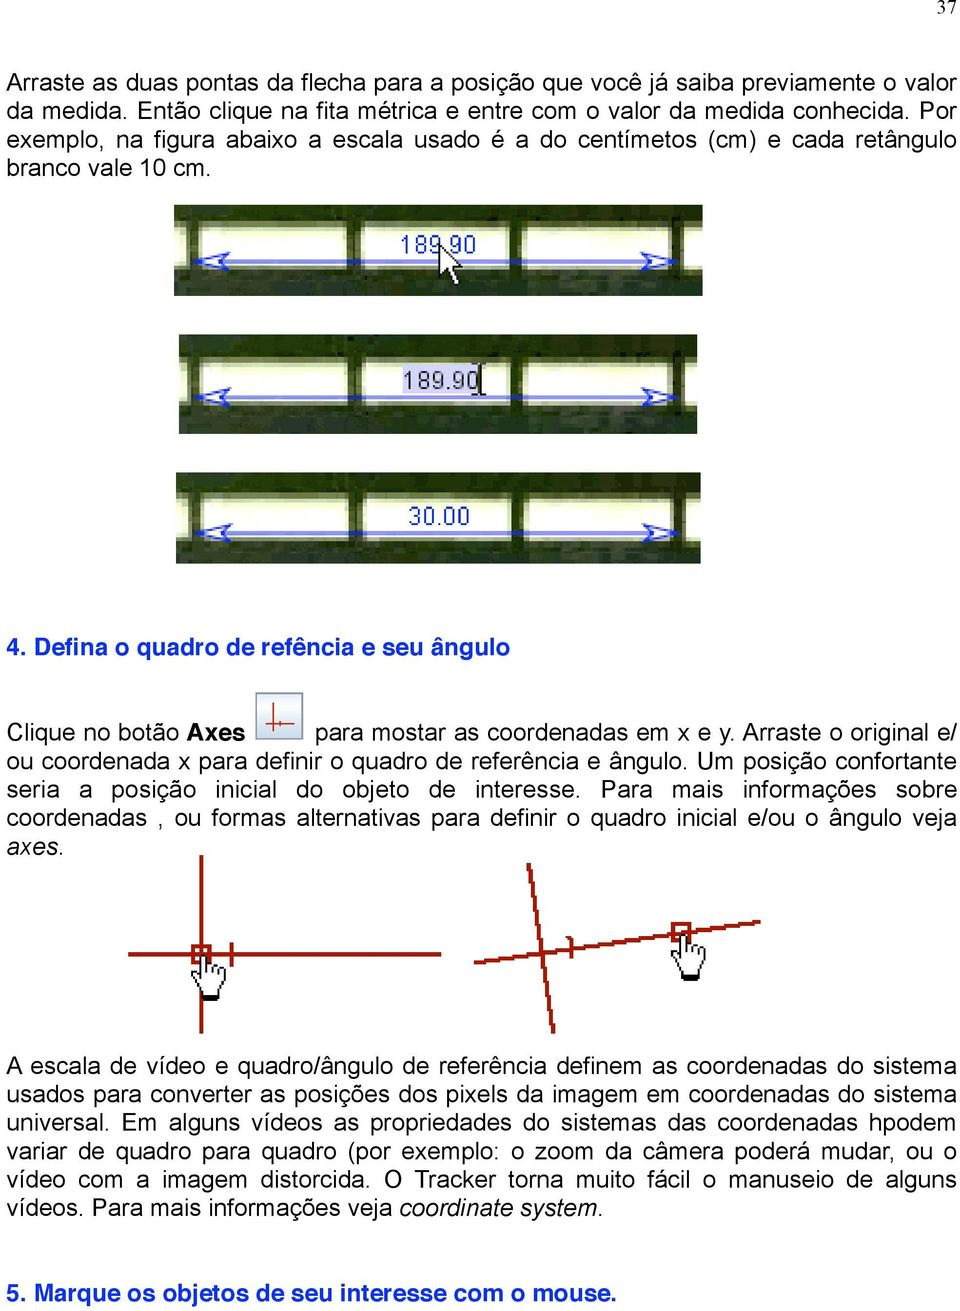 37 ag the two ends of the tape to positions that are a known world distance apart (for example, e ends of a Arraste meter Drag the stick as two duas or ends pontas other of the object da tape flecha